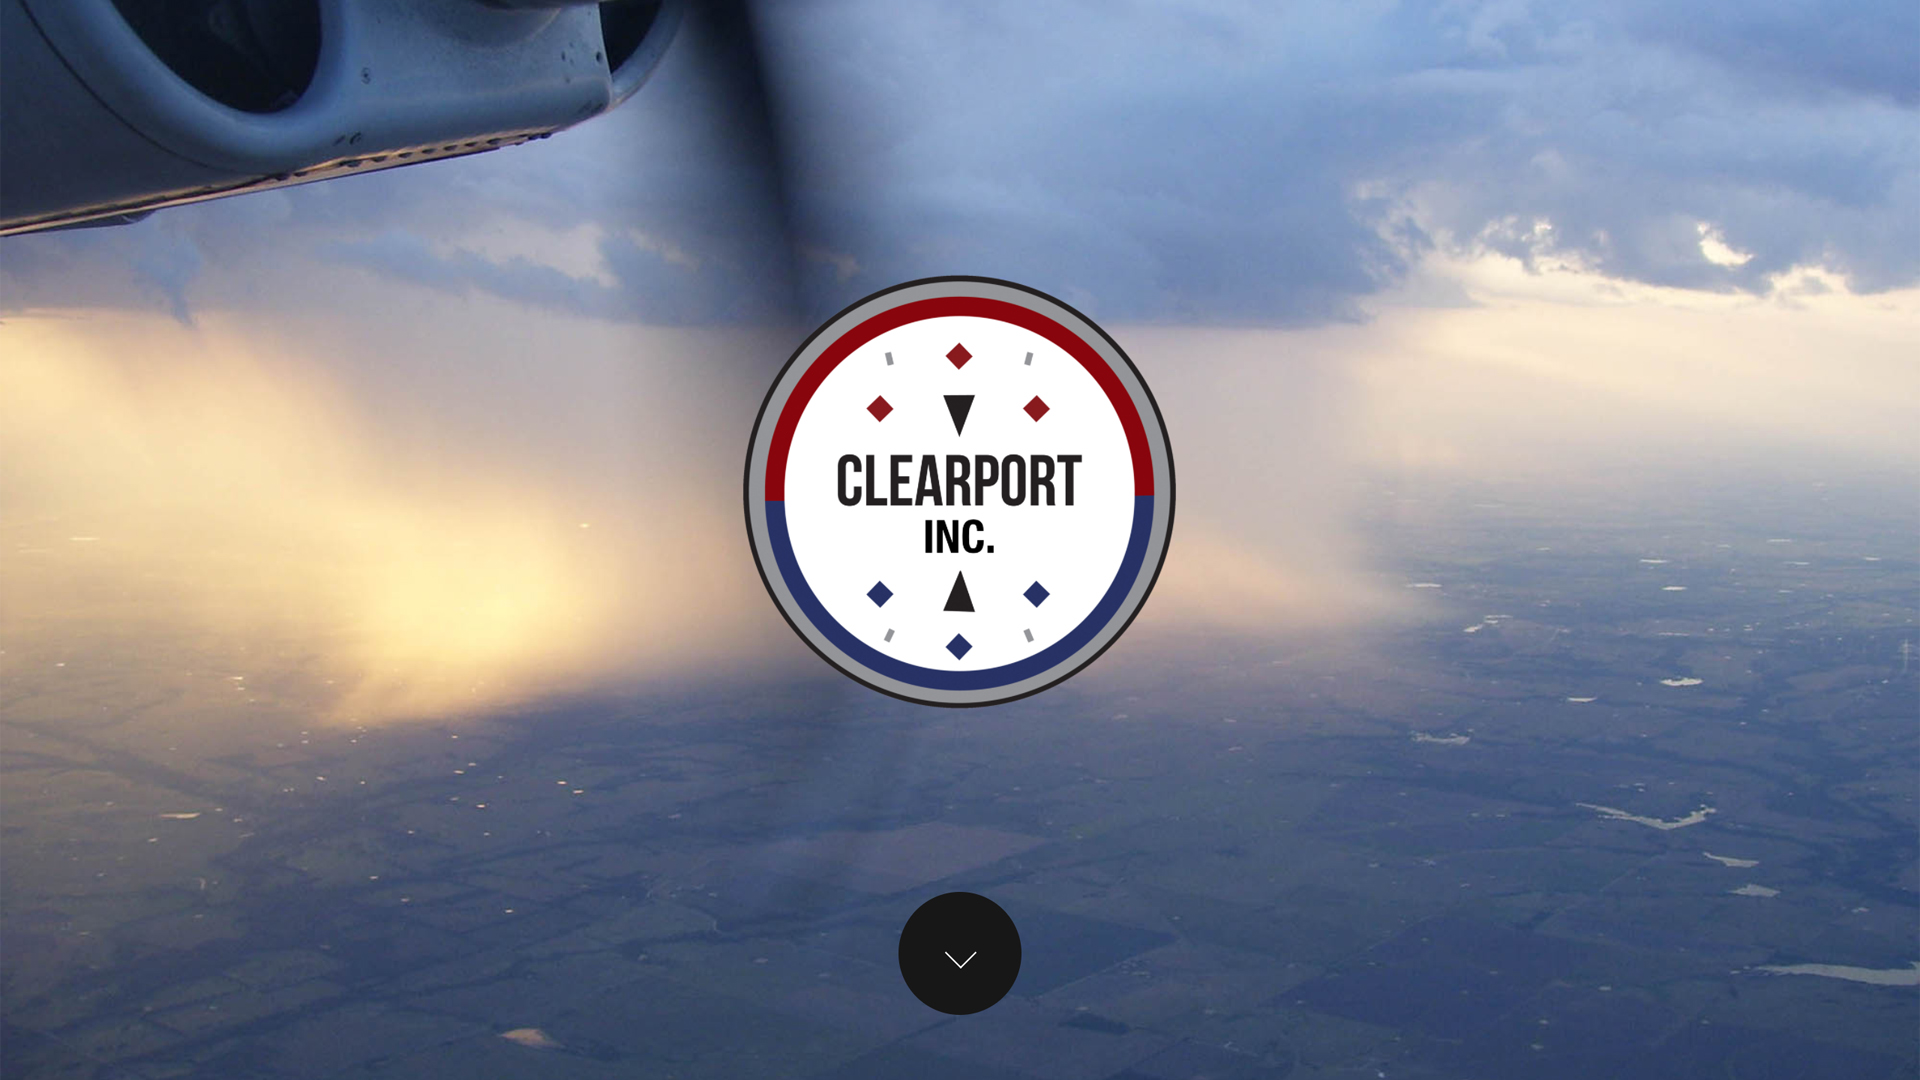 www.clearportconsulting.com